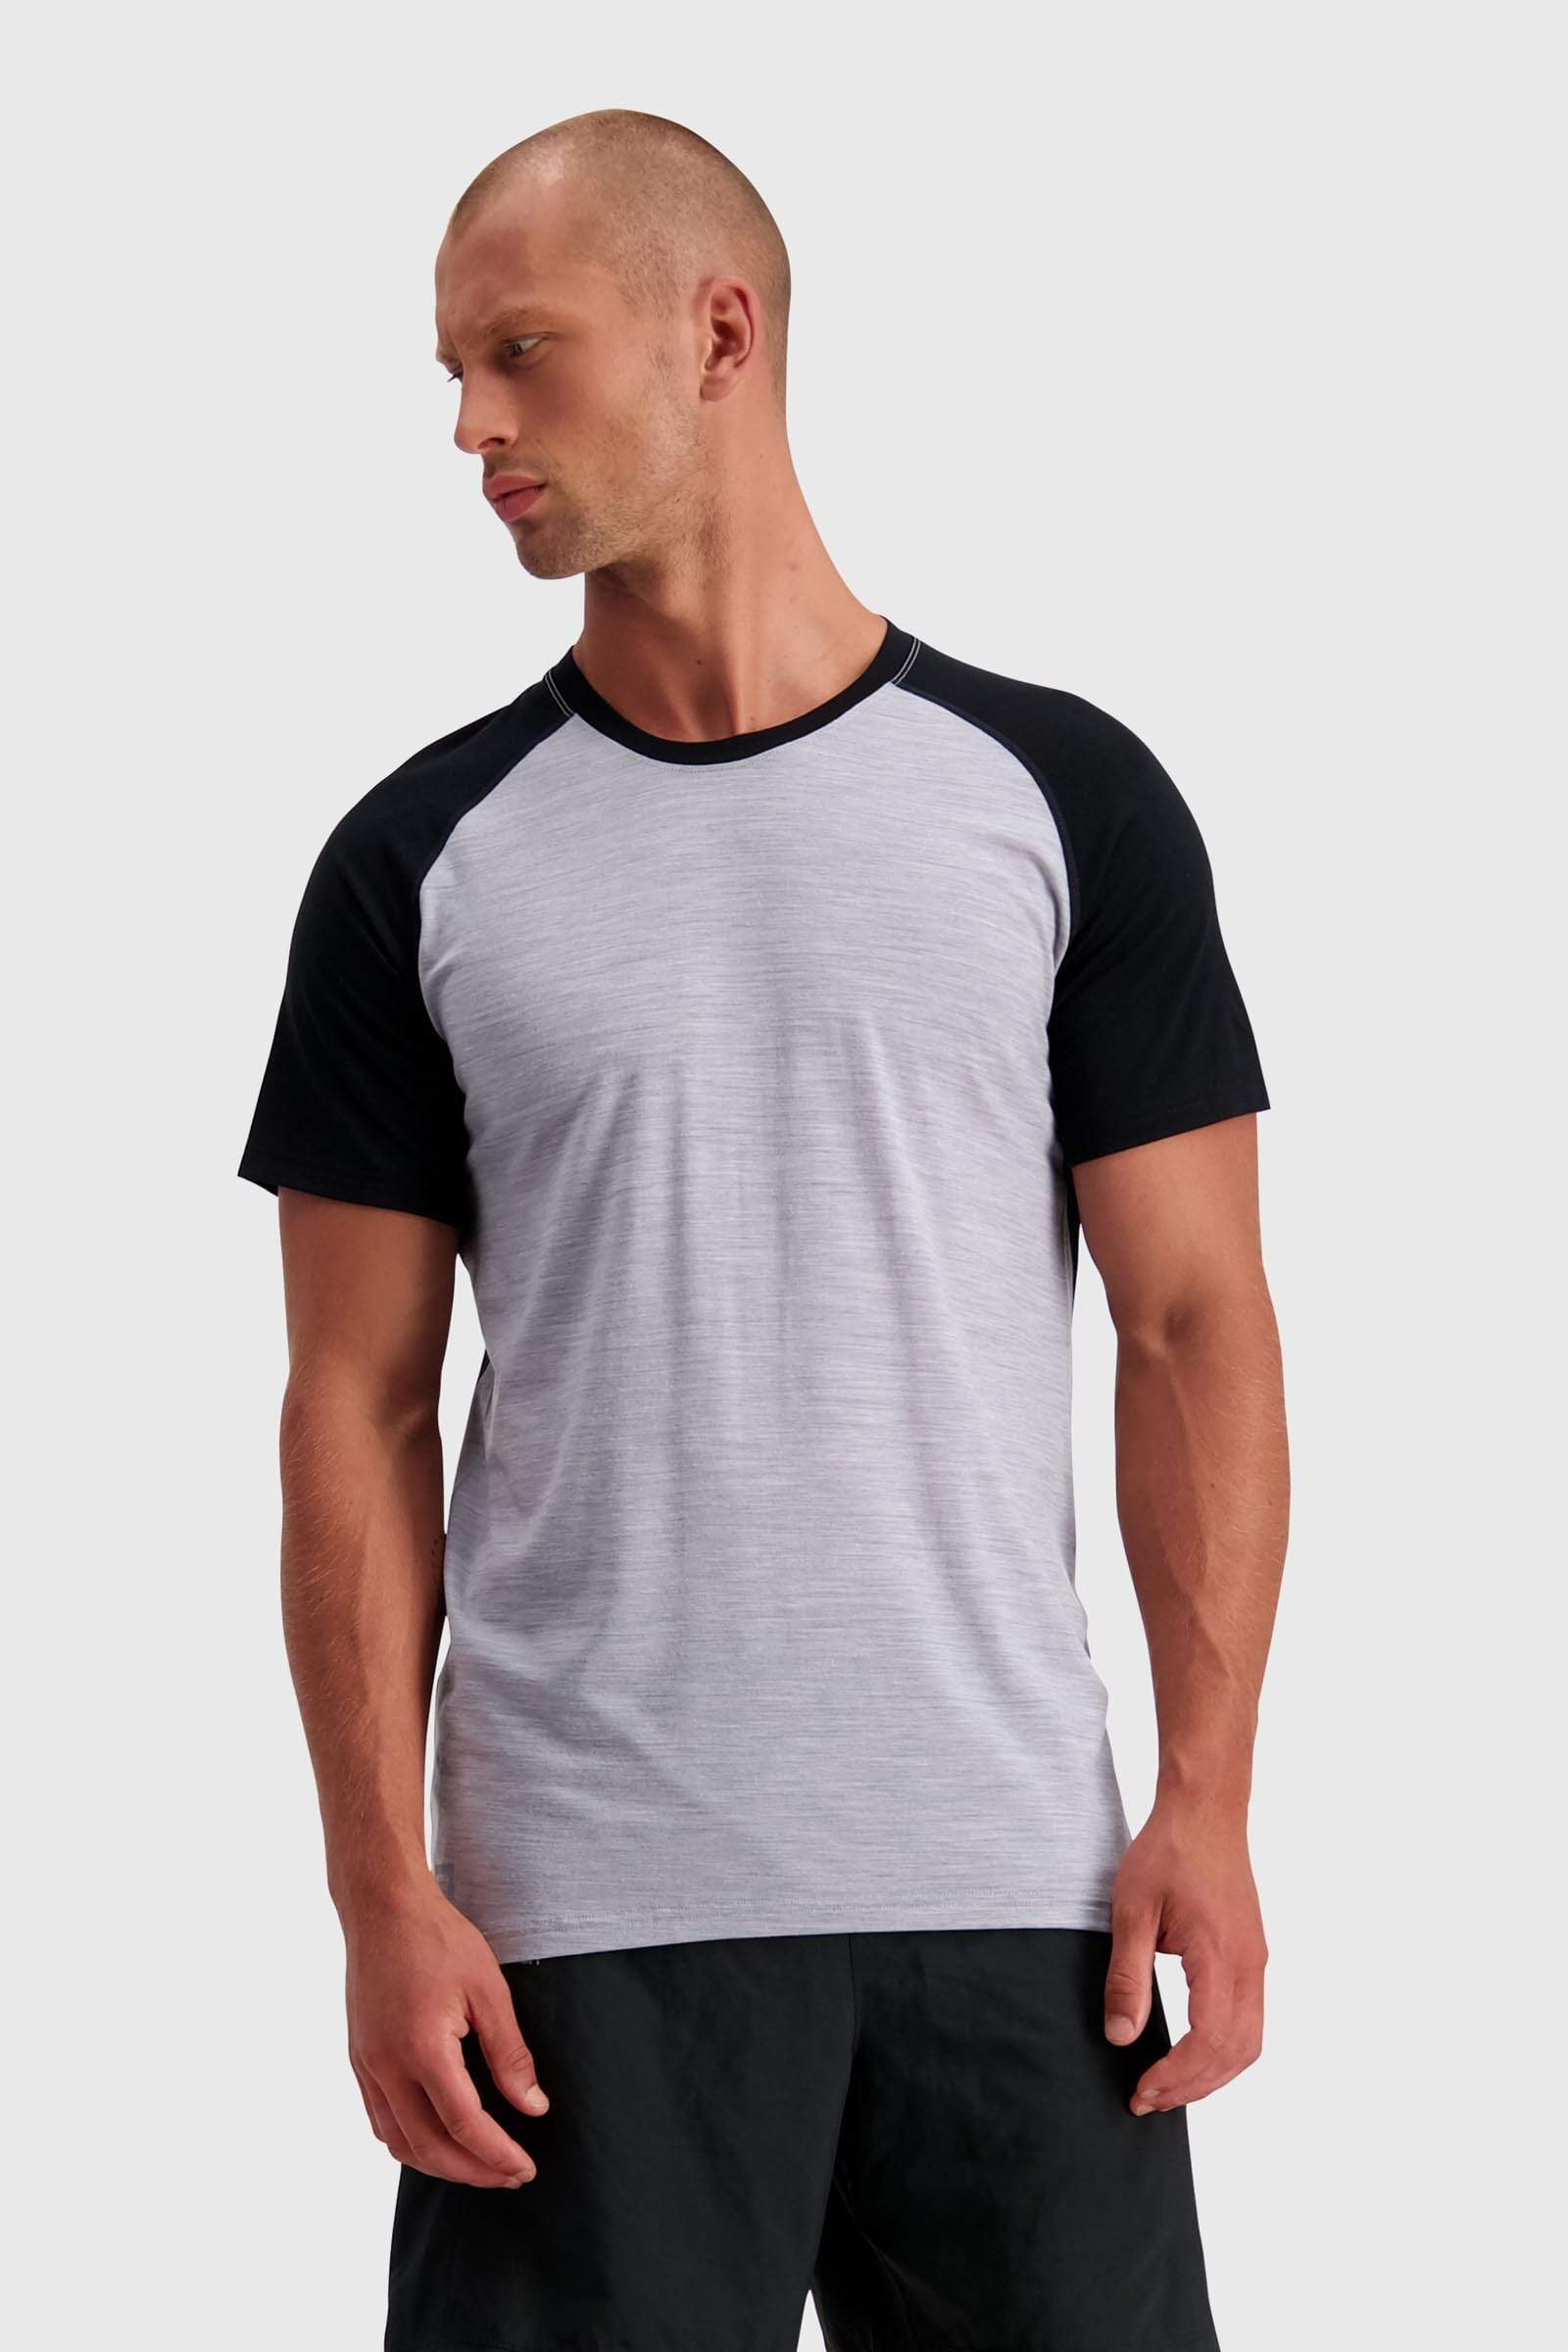 Mens Base Layer Short Sleeve Tops